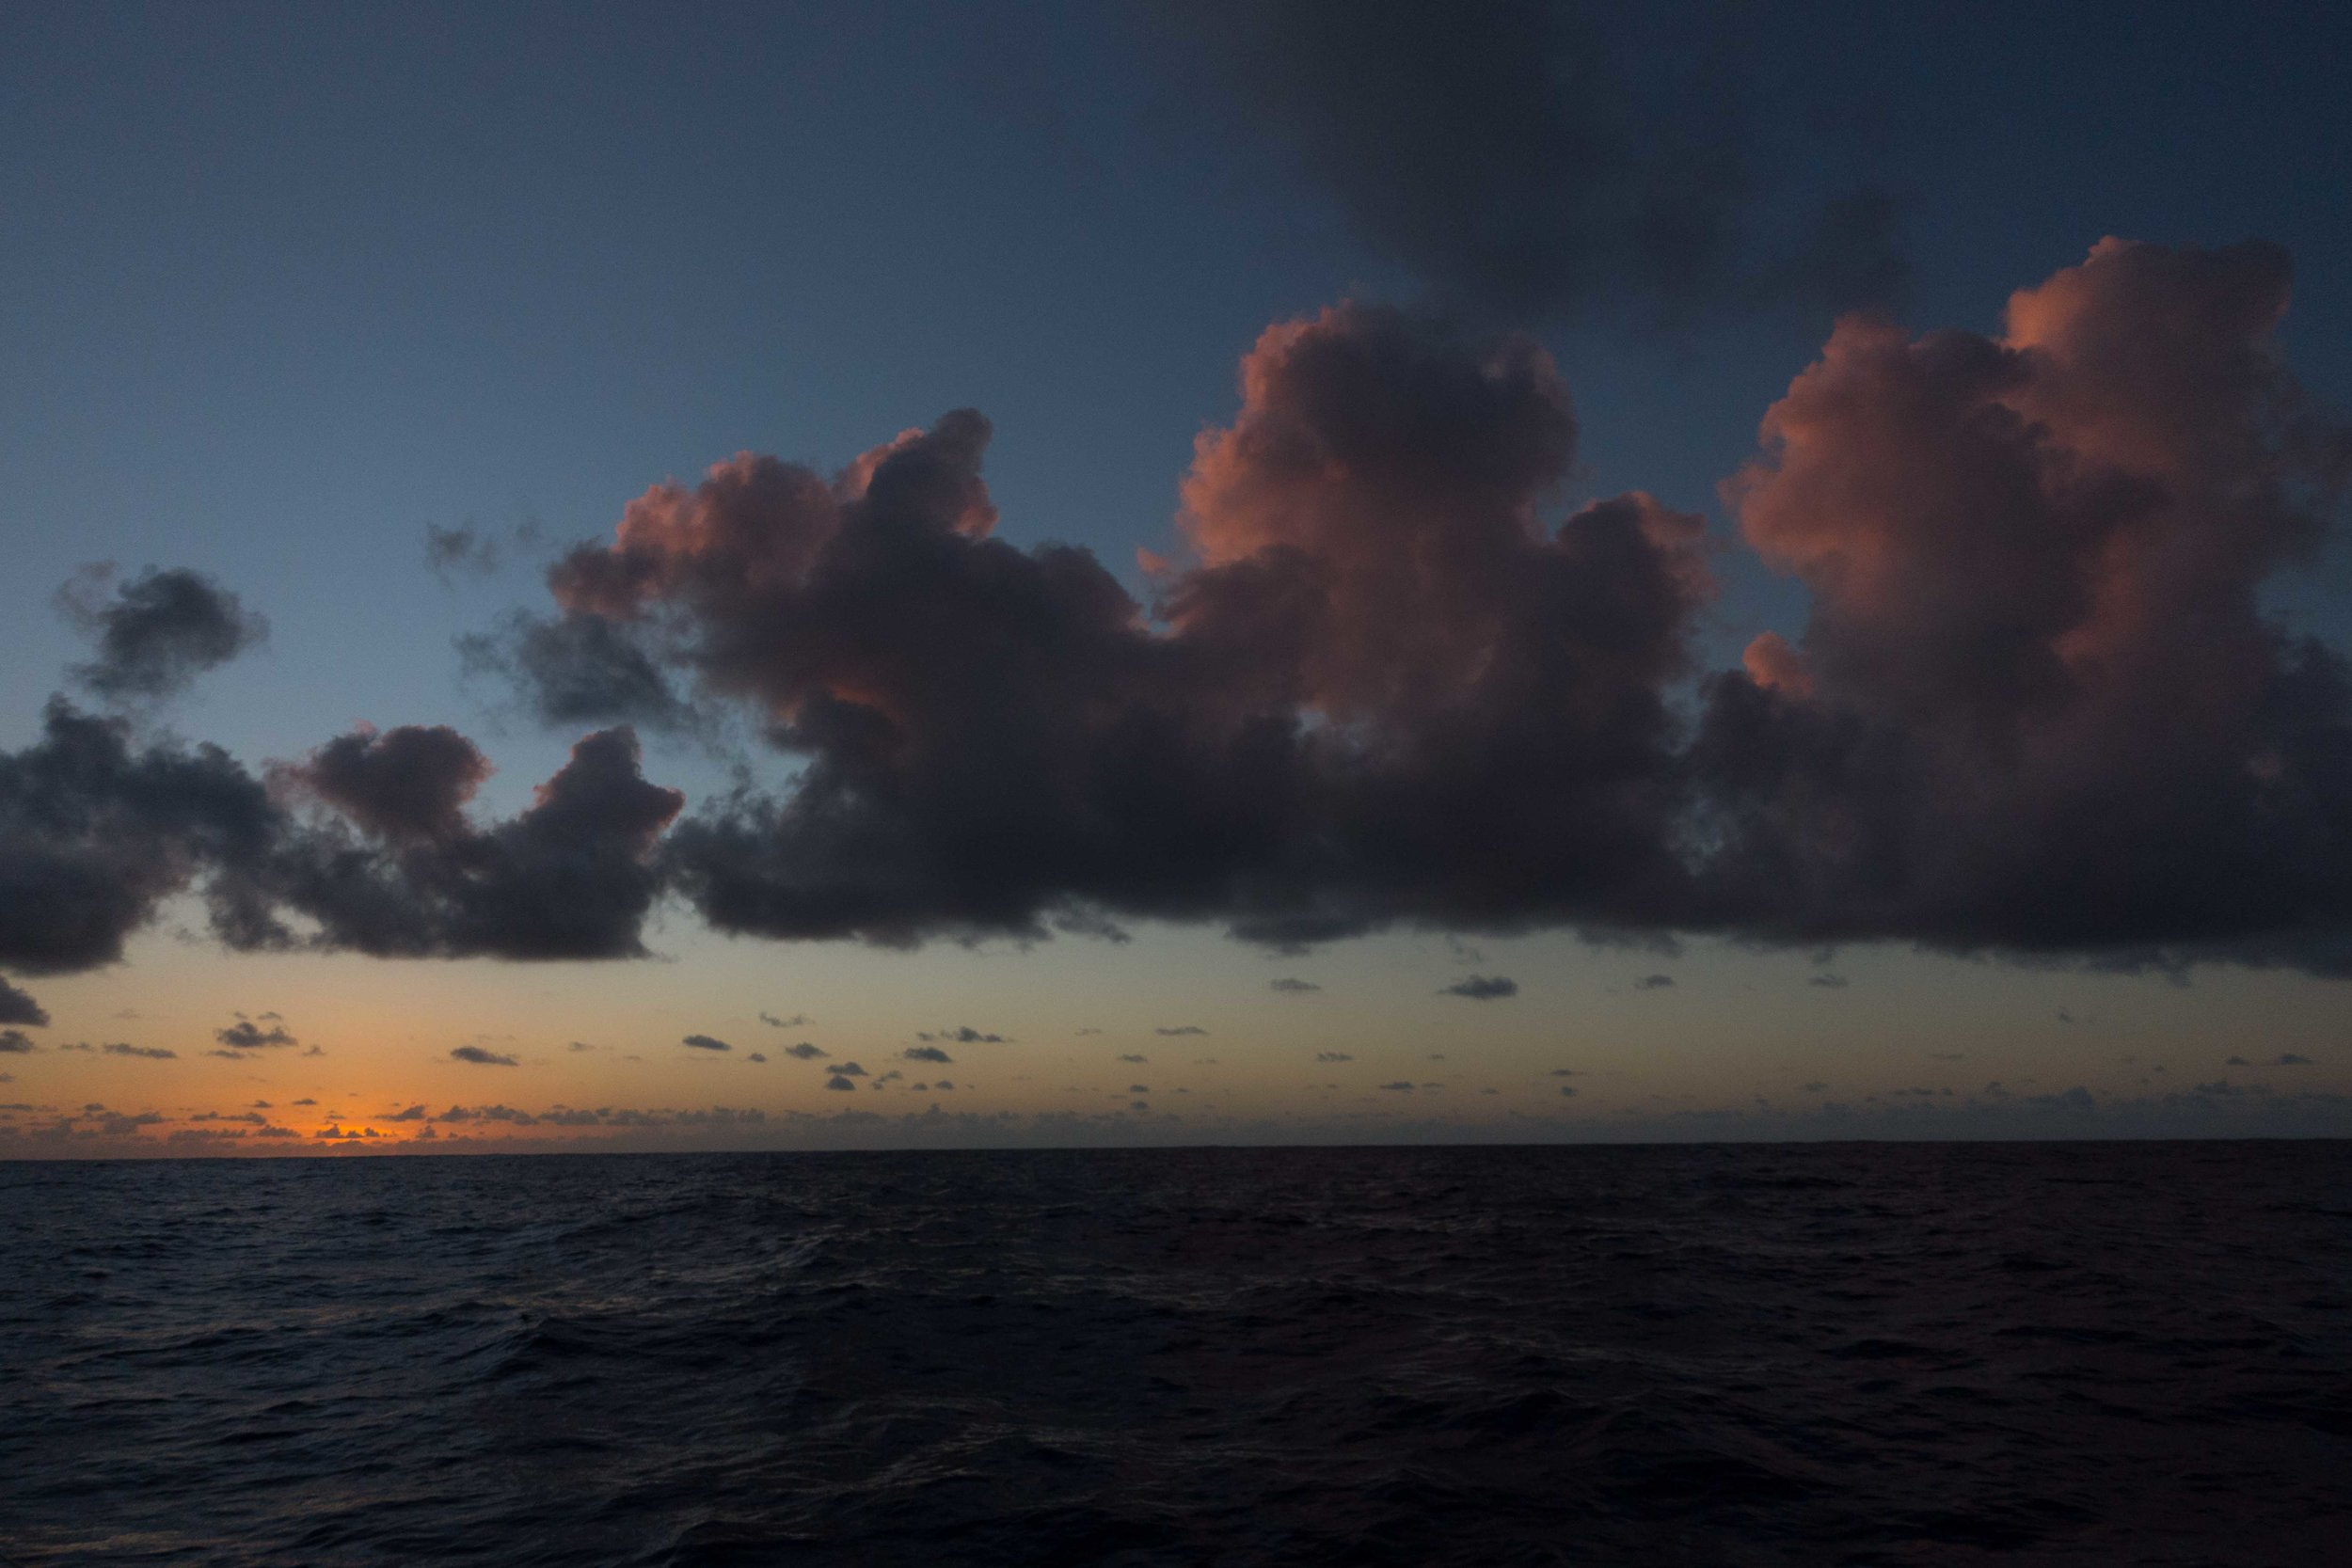 A sunset at sea, outbound Suwarrow, inbound Pago Pago